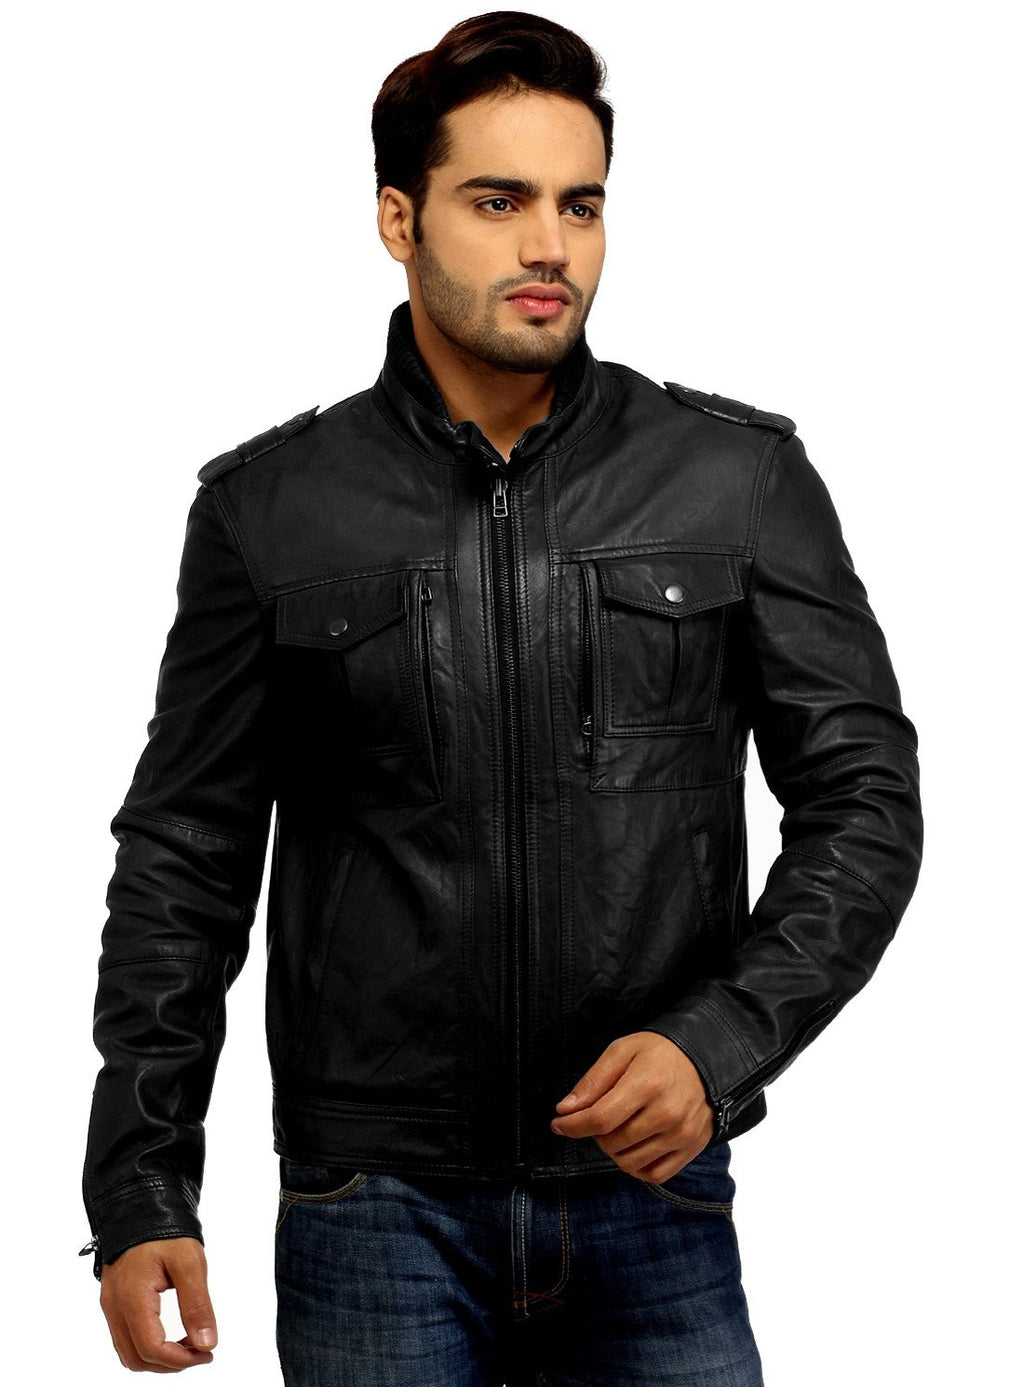 Men's Best Seller Short Leather Motorcycle Biker Jacket S / Leather / Black, Men Jacket - CrabRocks, LeatherfashionOnline  - 1